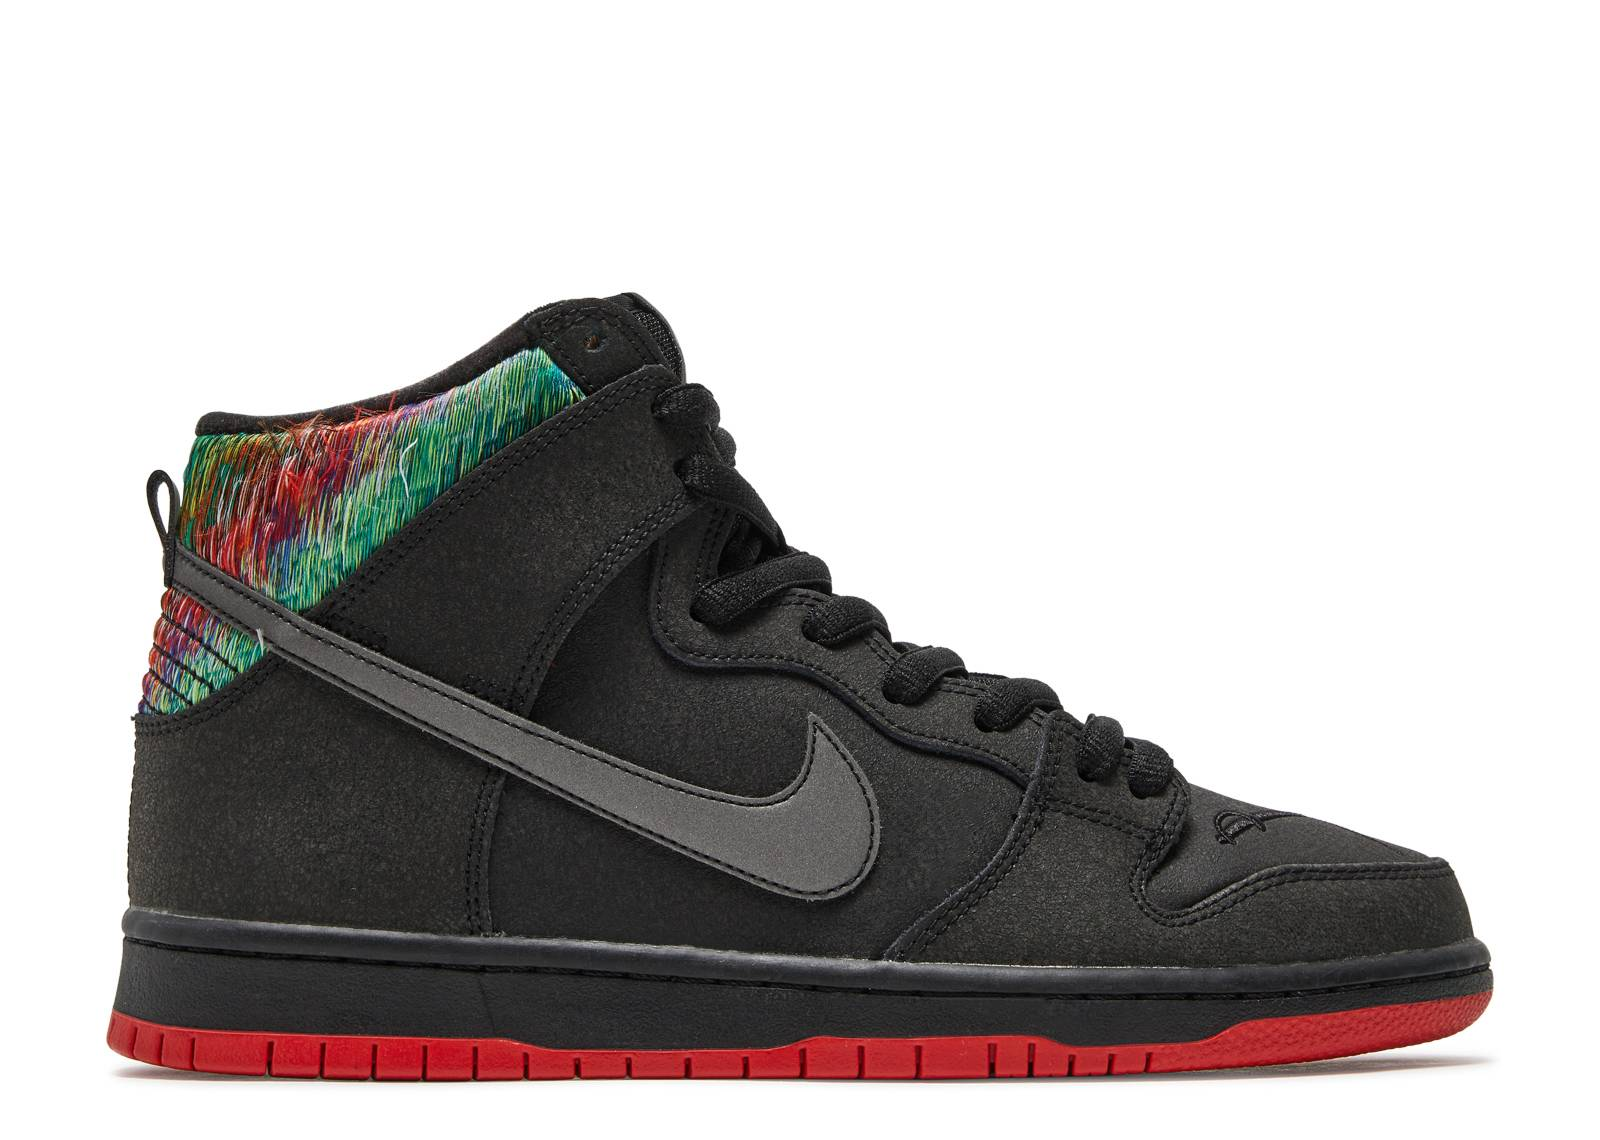 dunk high premium sb gasparilla nike 313171 028. Black Bedroom Furniture Sets. Home Design Ideas